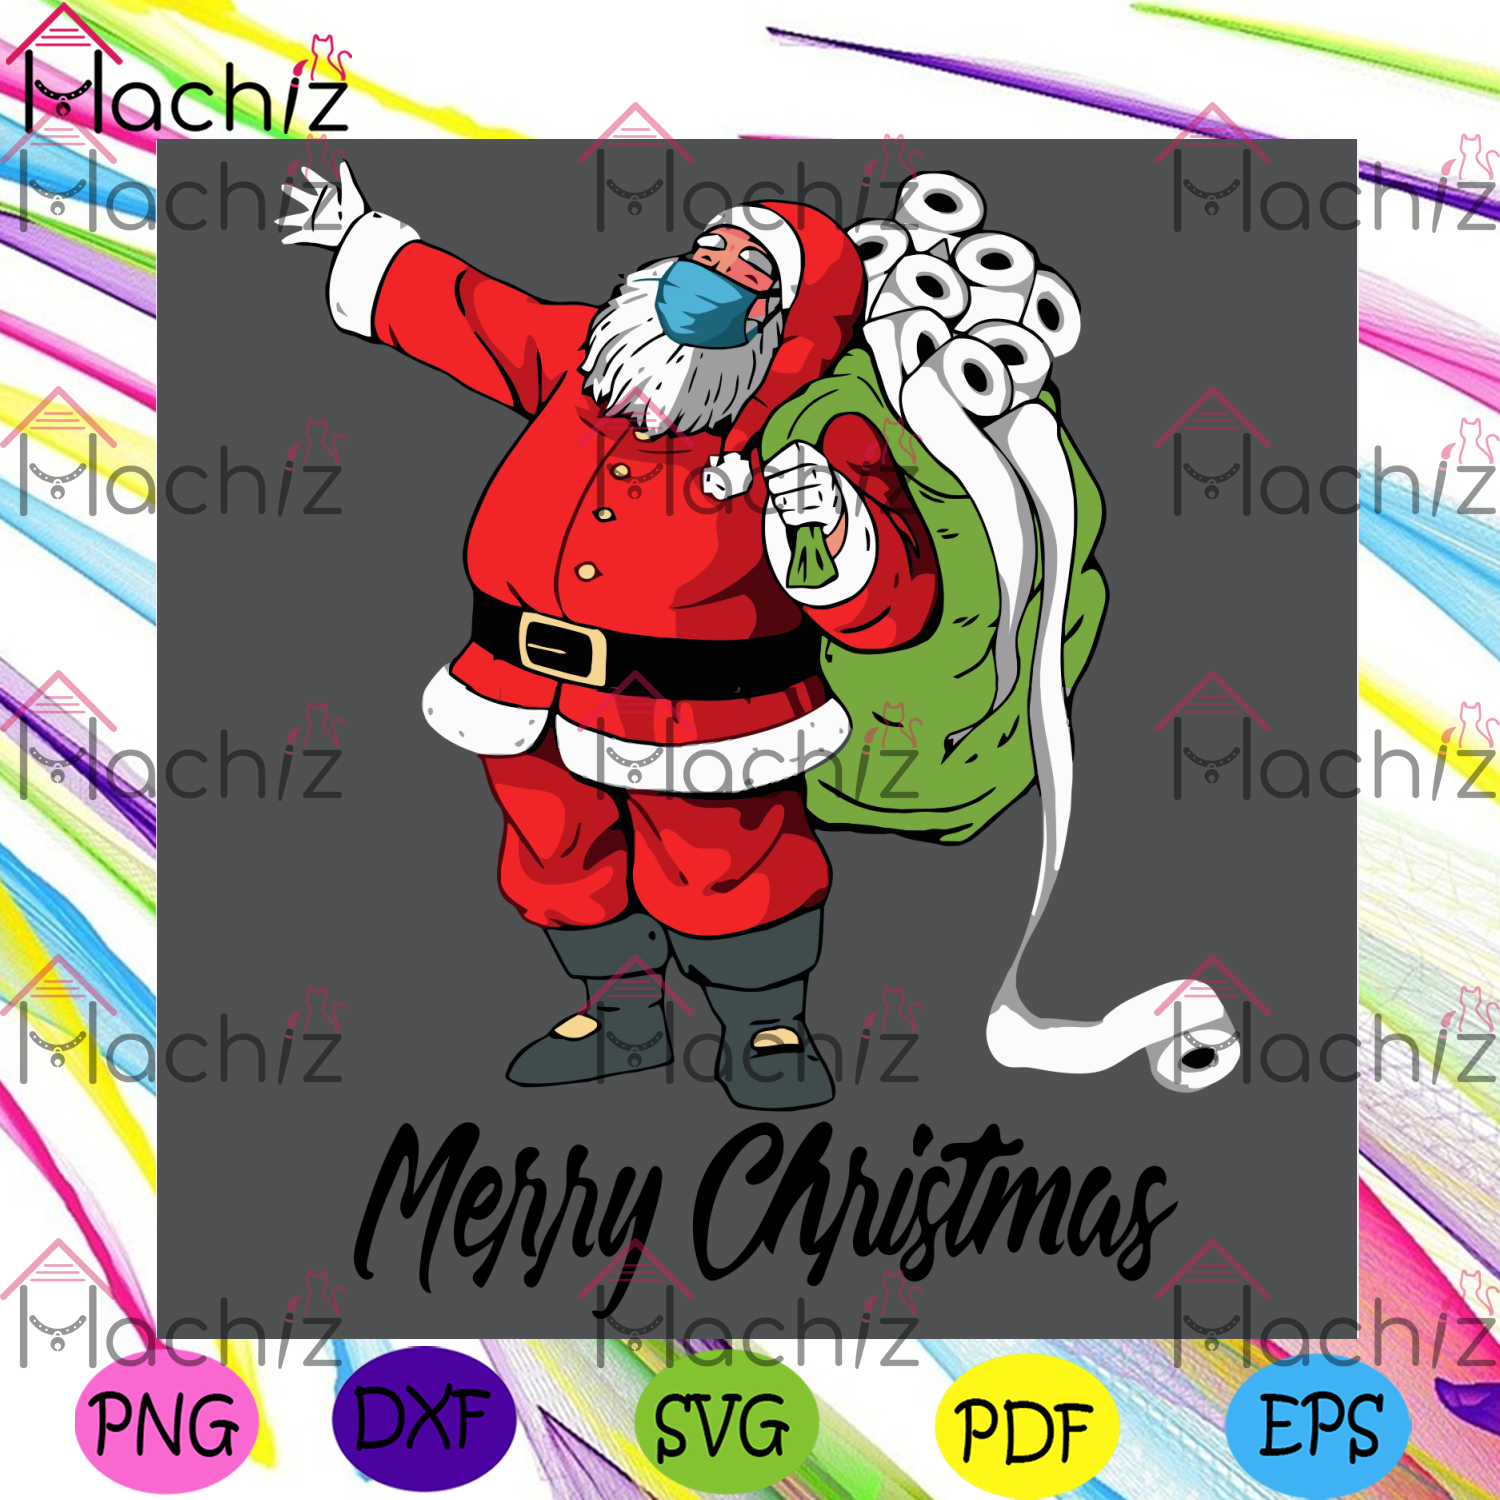 Santa With Face Mask And Toilet Paper Svg, Christmas Svg, Santa With Face Mask Svg, Toilet Paper Svg, Funny Christmas, Christmas 2020 Svg, Merry Christmas Svg, Xmas Svg, Christmas Party Svg, Christmas Holiday Svg